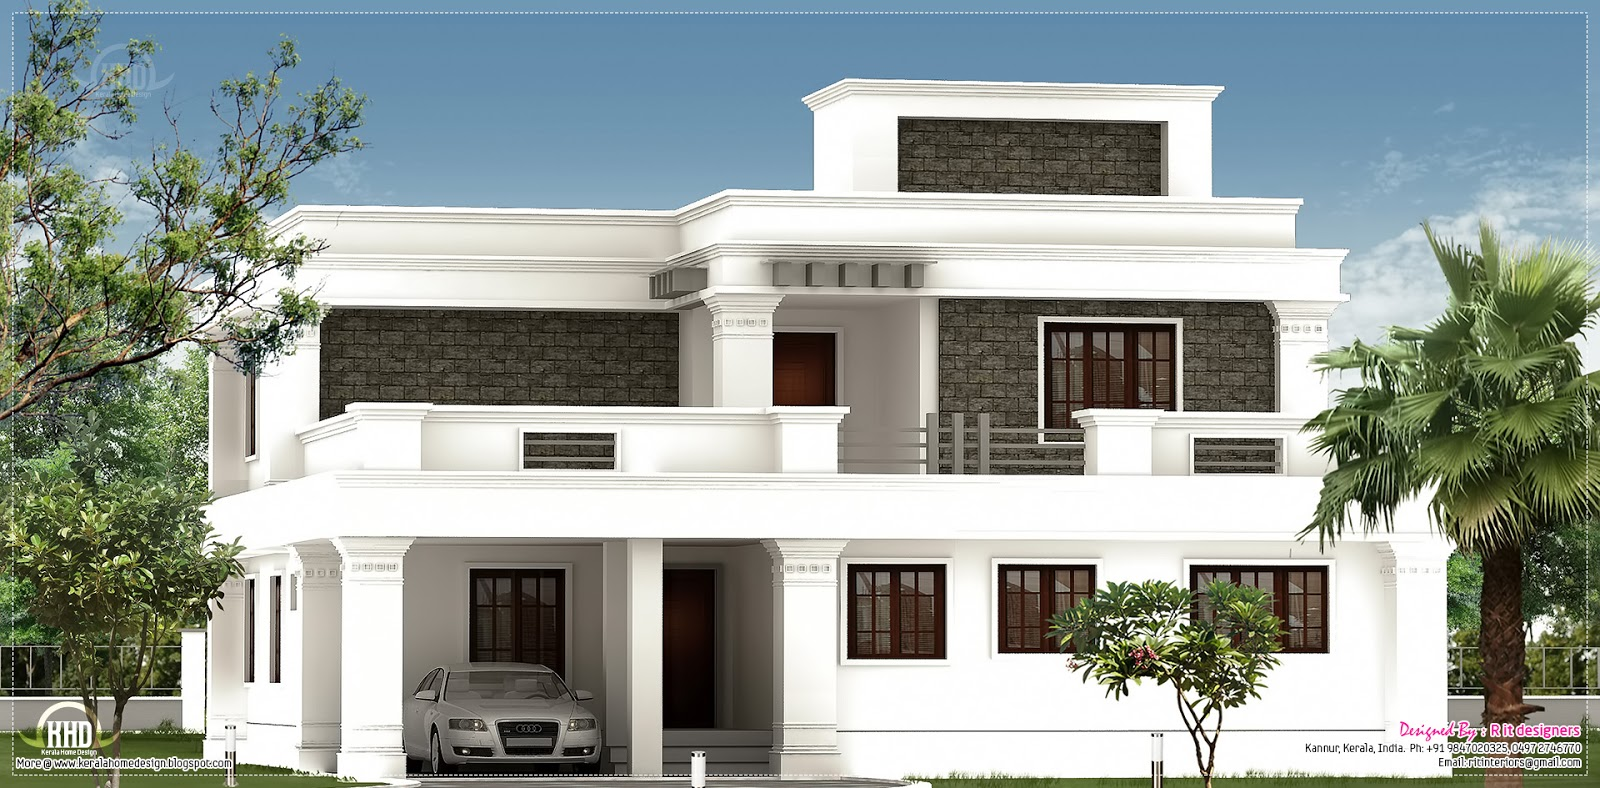 Flat roof villa exterior in 2400 kerala home design and floor plans - Home sweet home designs ...